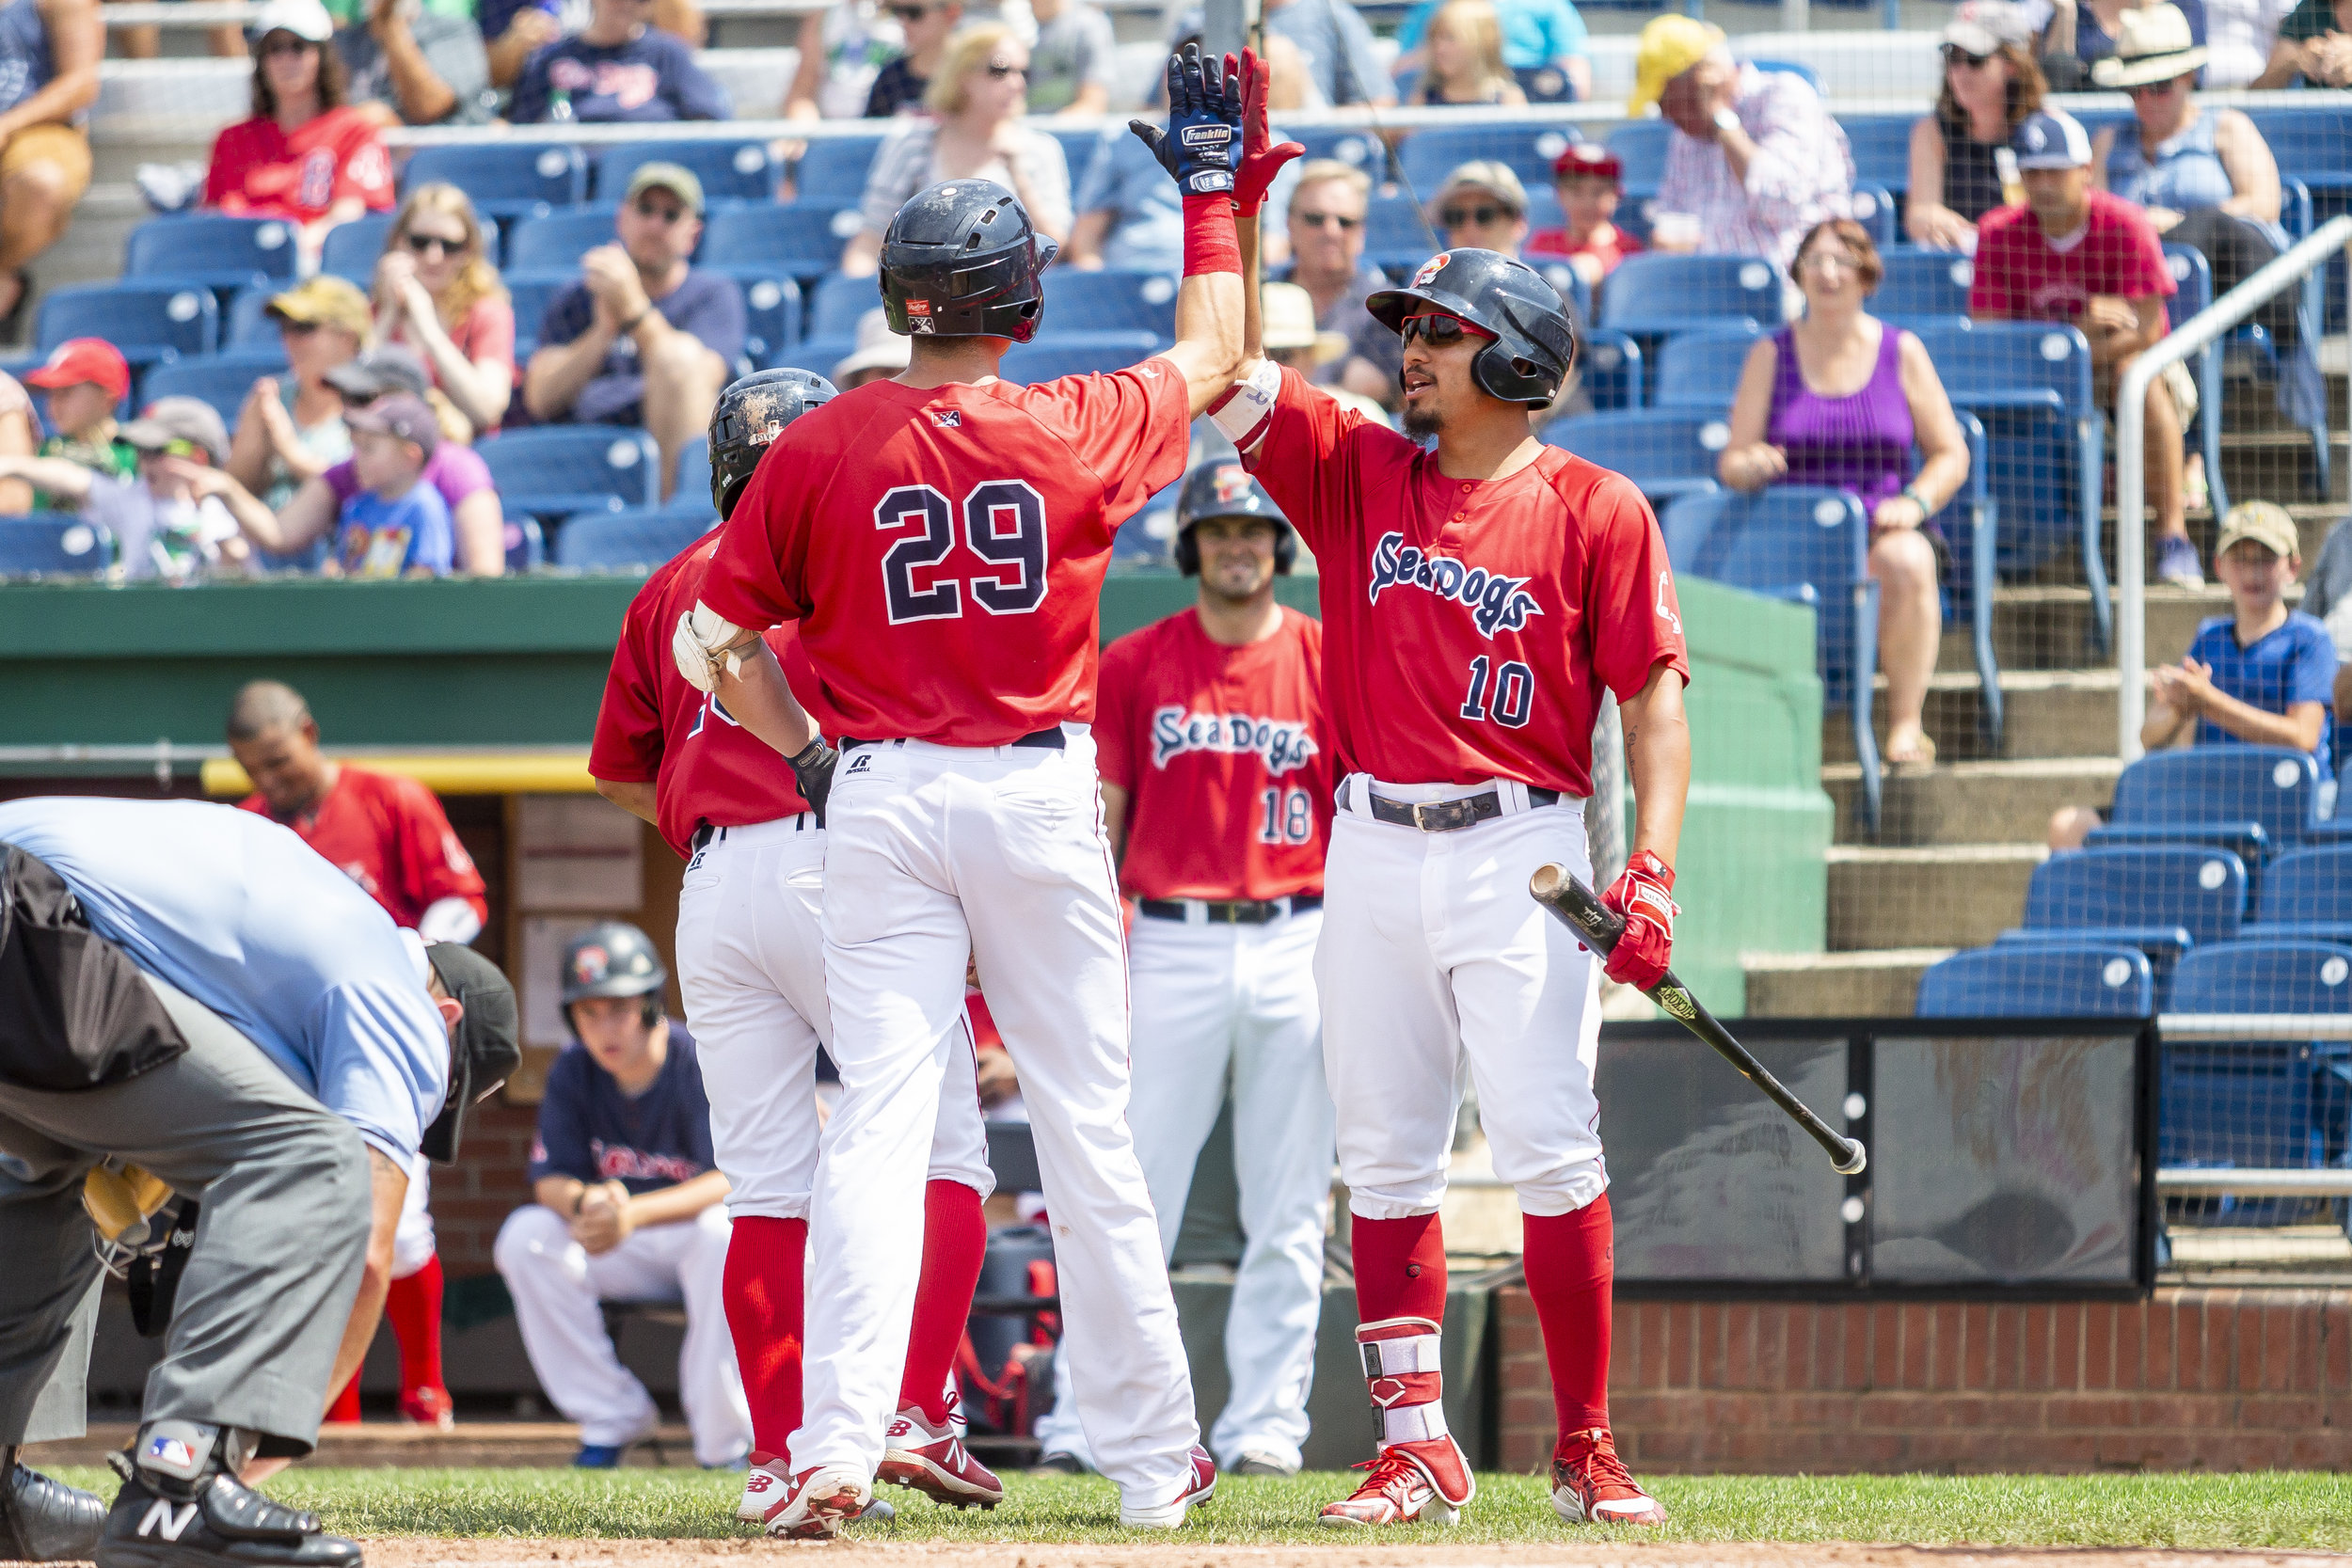 PORTLAND, ME - AUGUST 05:  Bobby Dalbec #29 of the Portland Sea Dogs is congratulated by his teammates after hitting a two-run-home-run in the game against the Richmond Flying Squirrels on August 5, 2018 in Portland, ME at Hadlock Field . (Photo by Zachary Roy/Getty Images)